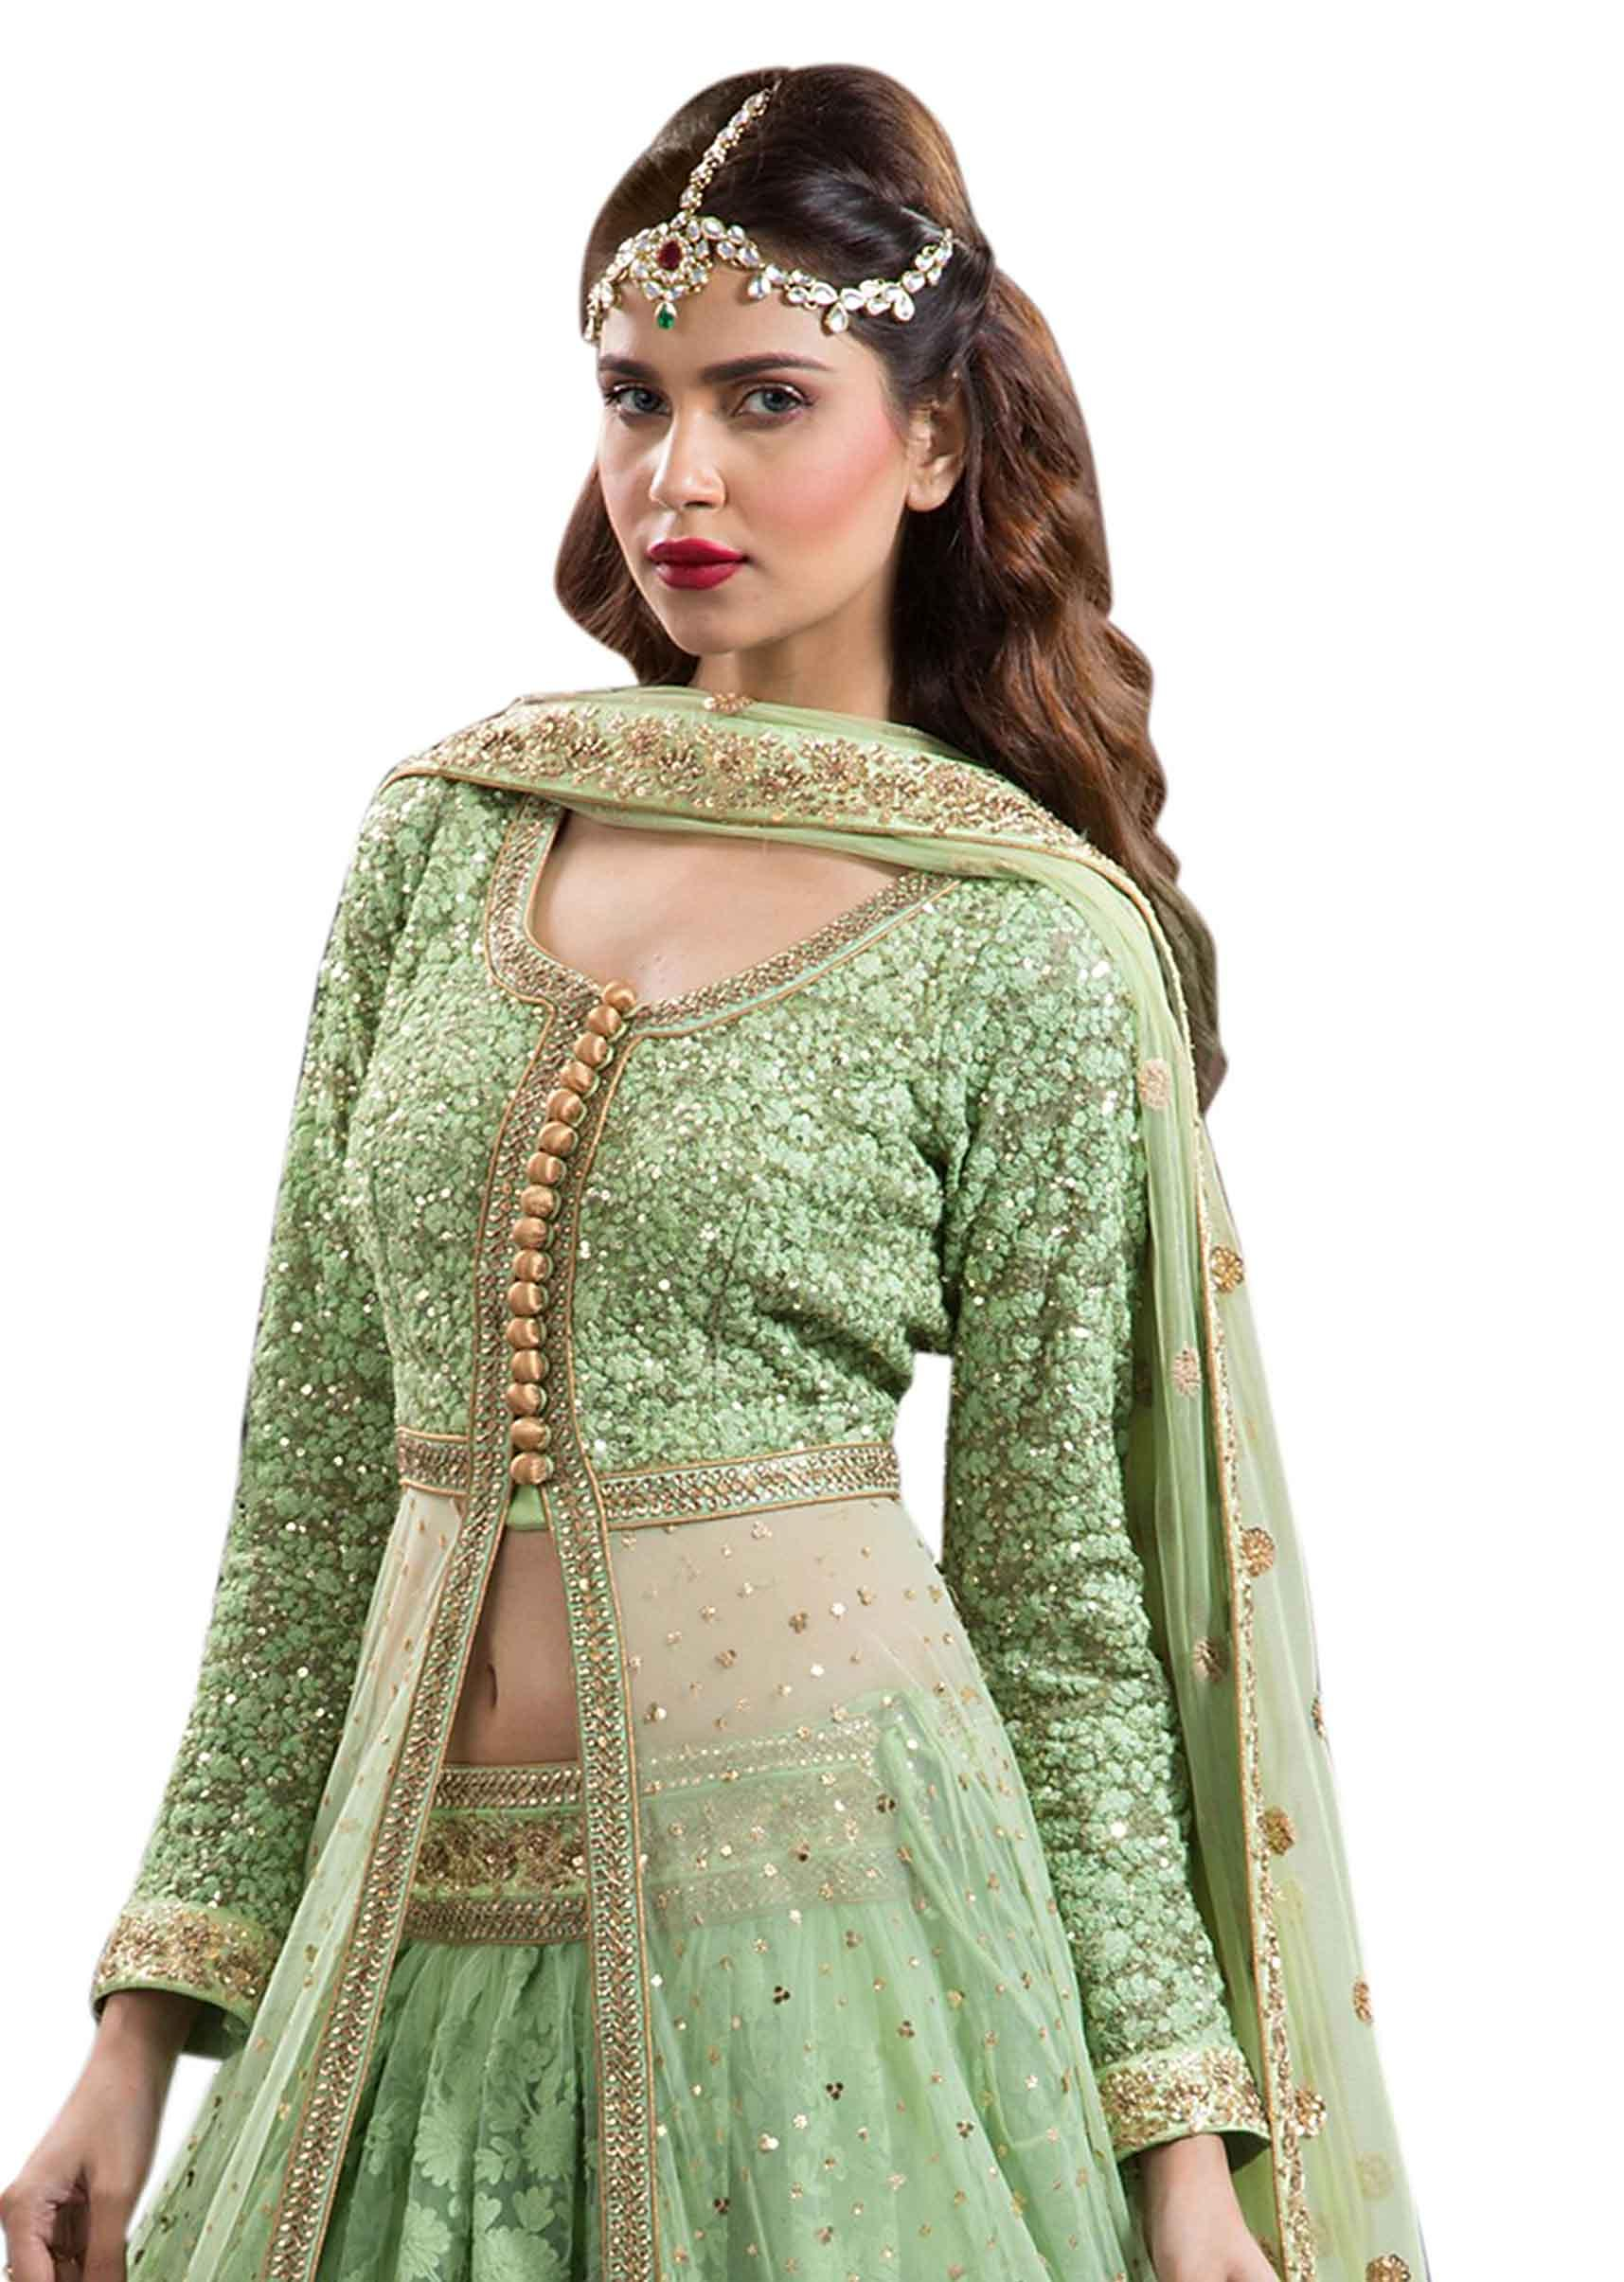 da0a773d0 Green lehenga with long embroidered jacket blouse